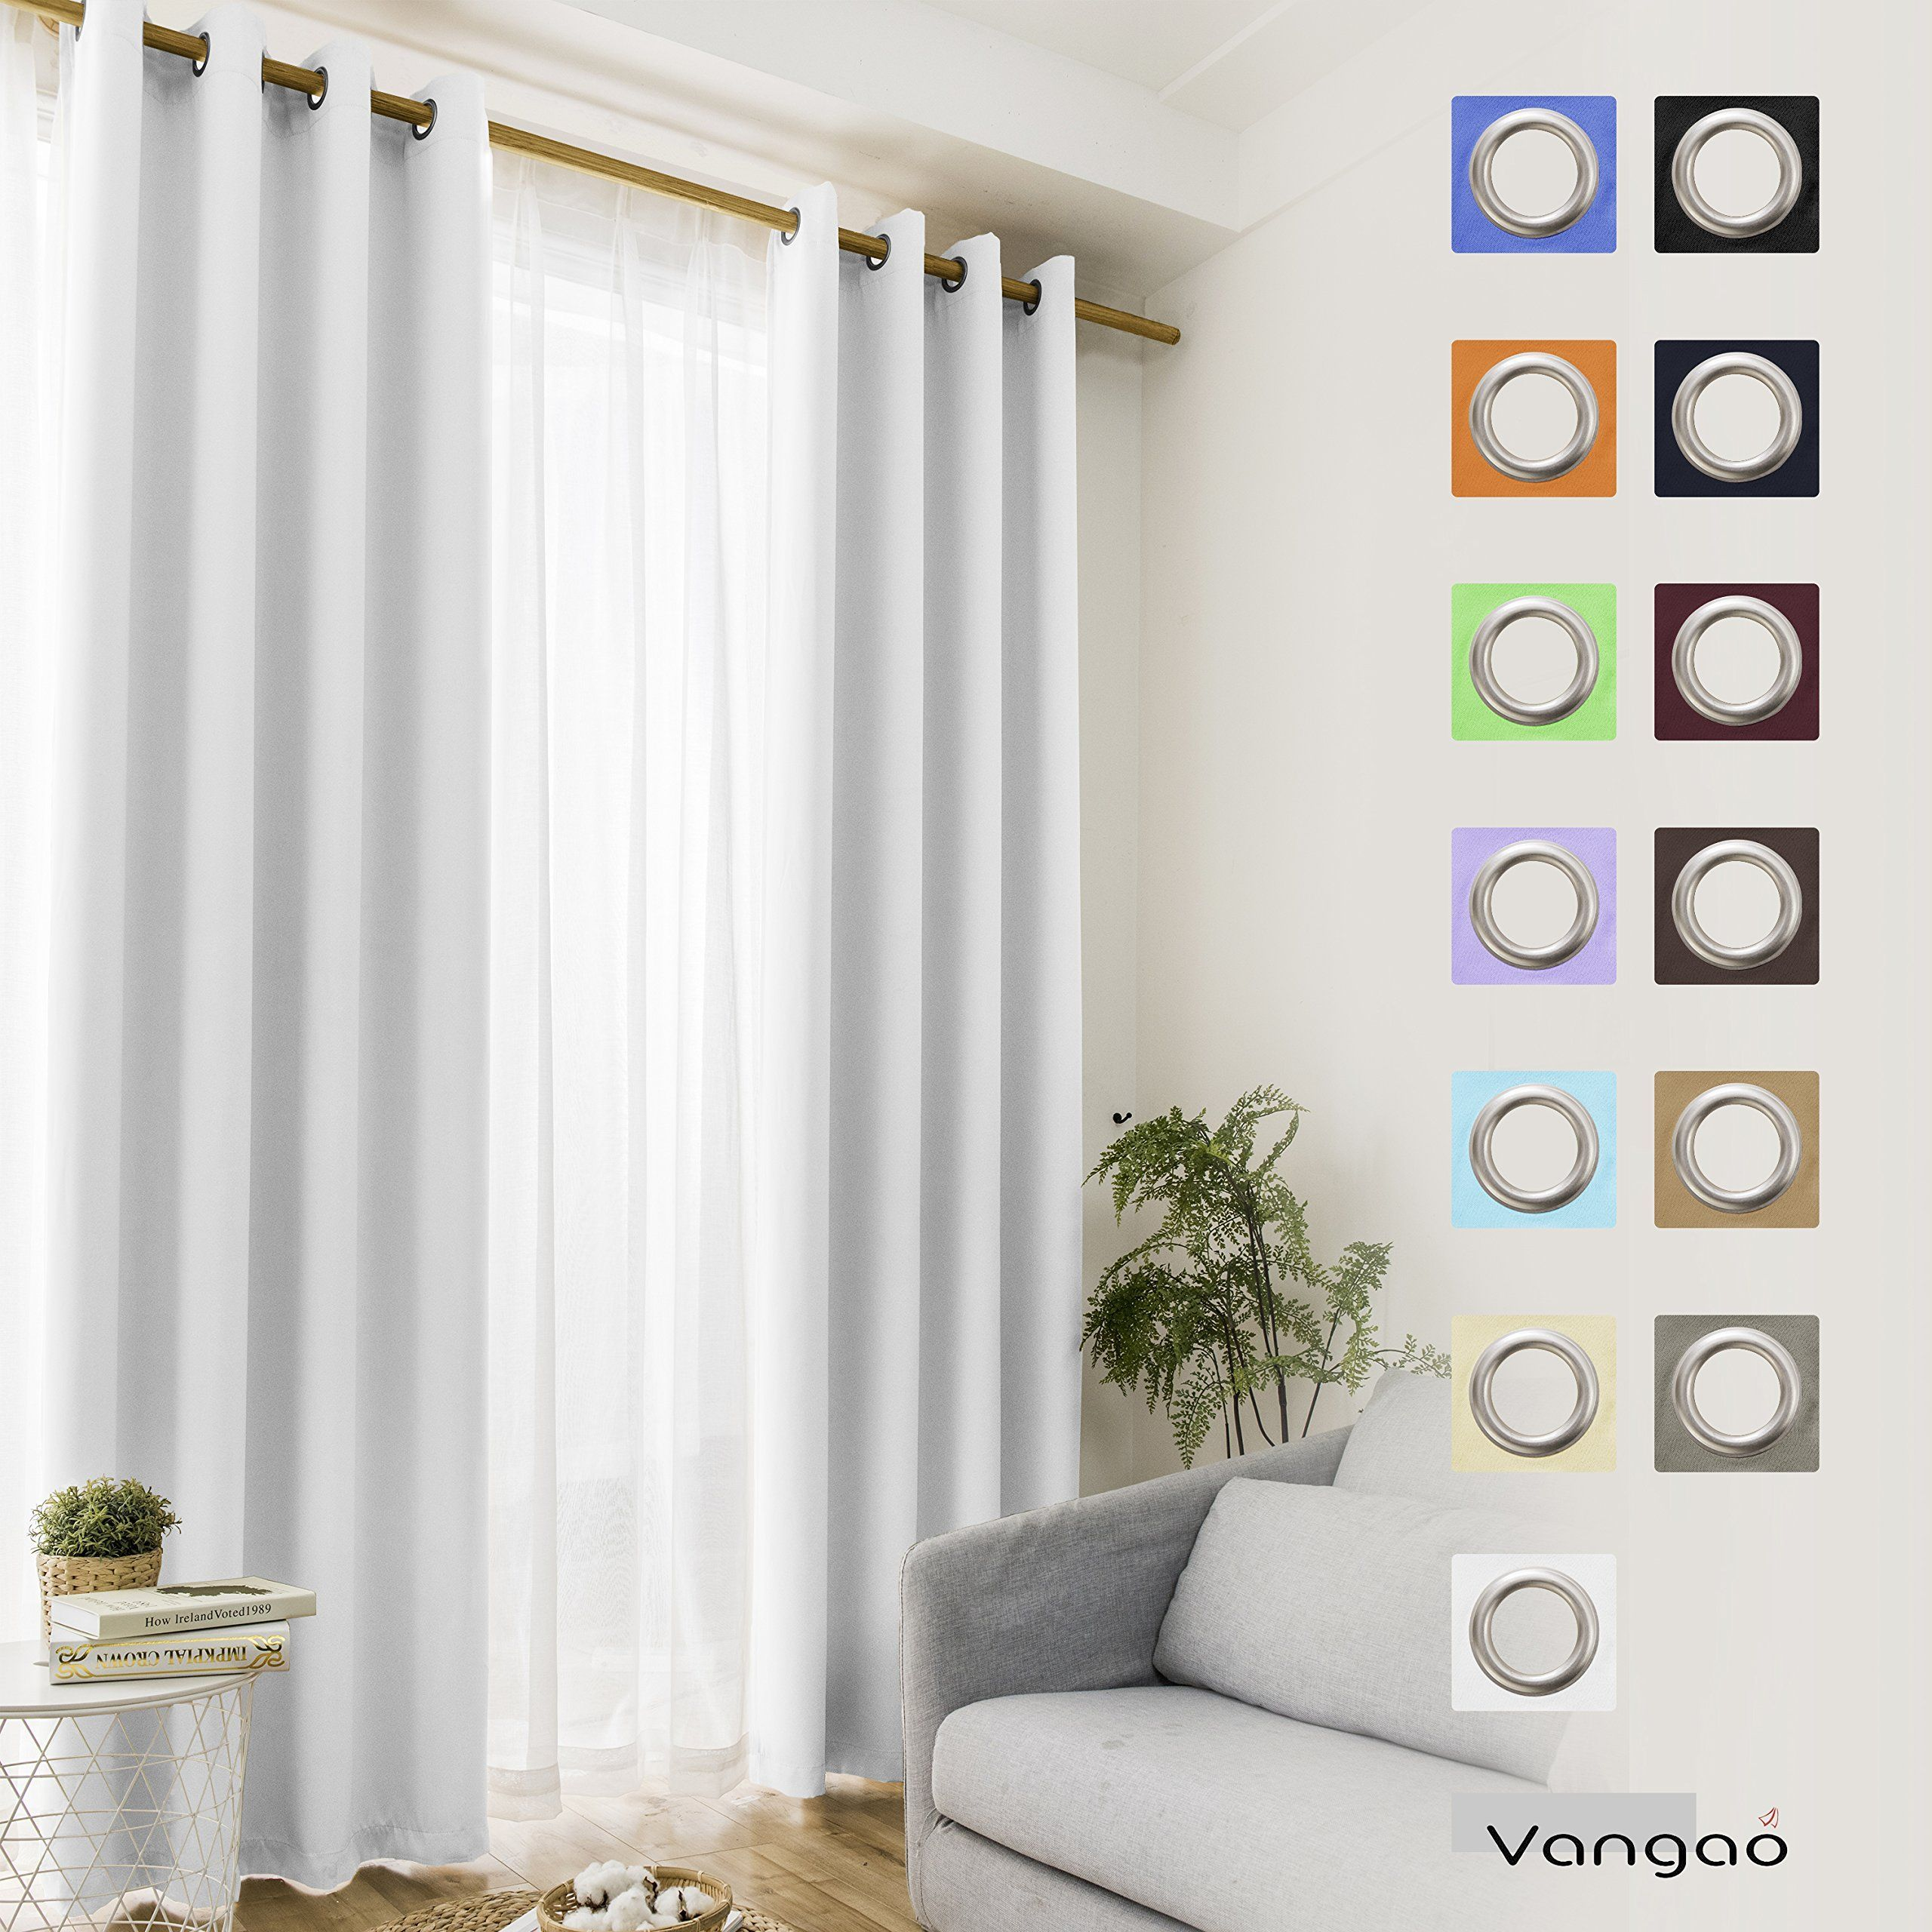 Vangao Light Blocking Greyish White Blackout Curtains Darkening Thermal Insulated Home Decorative Curtain Panels White Blackout Curtains Cool Curtains Curtains